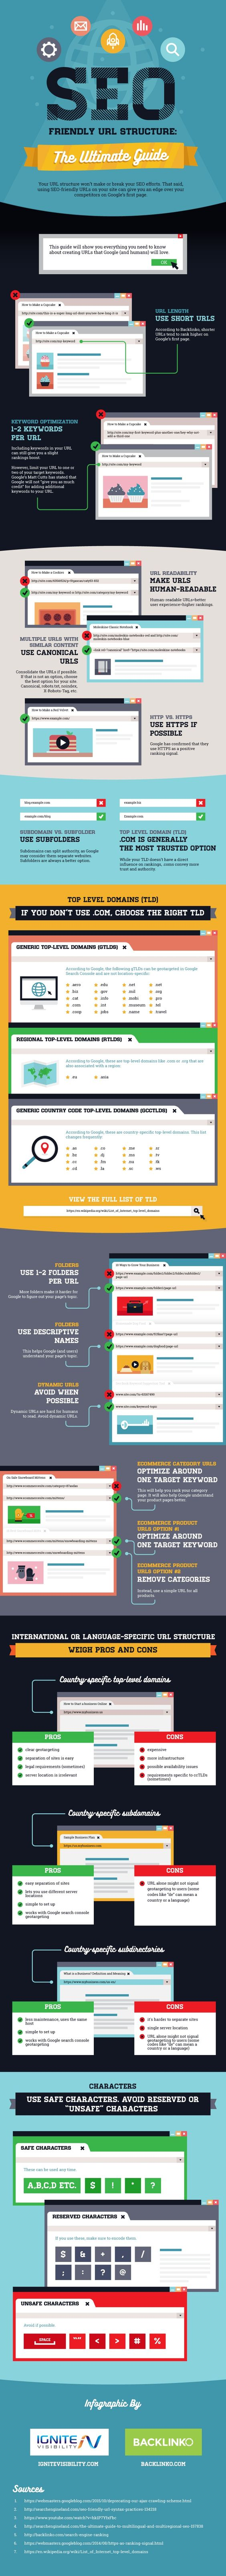 How to Make Your URLs Search-Friendly [Infographic], via @HubSpot